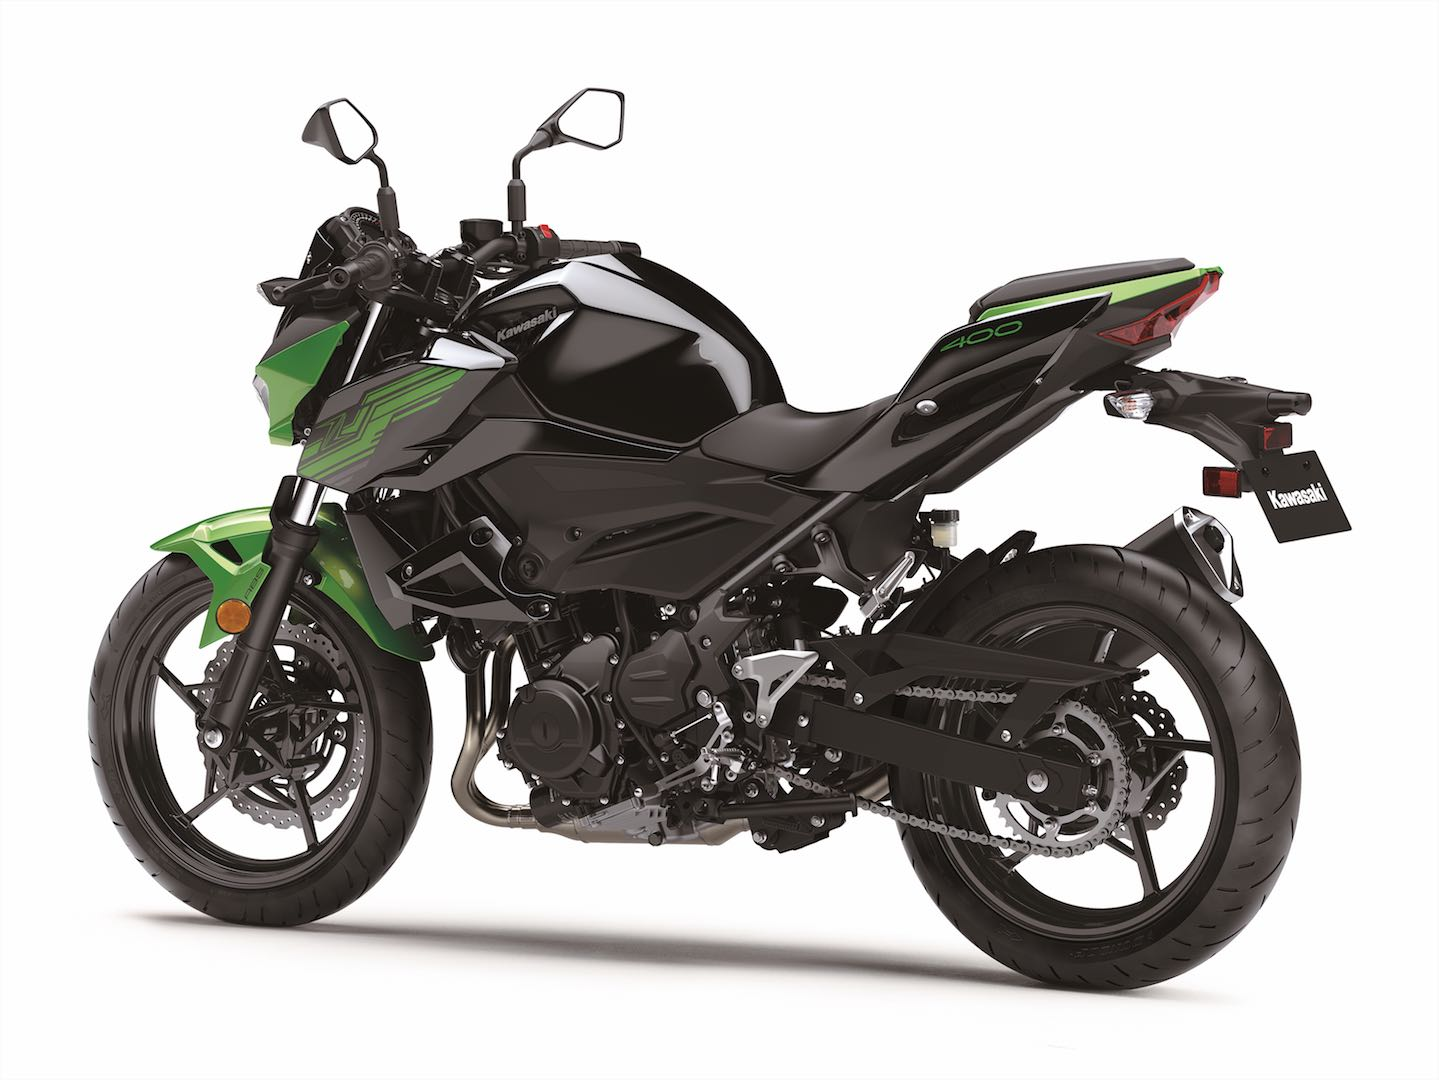 2019 Kawasaki Z400 ABS left side